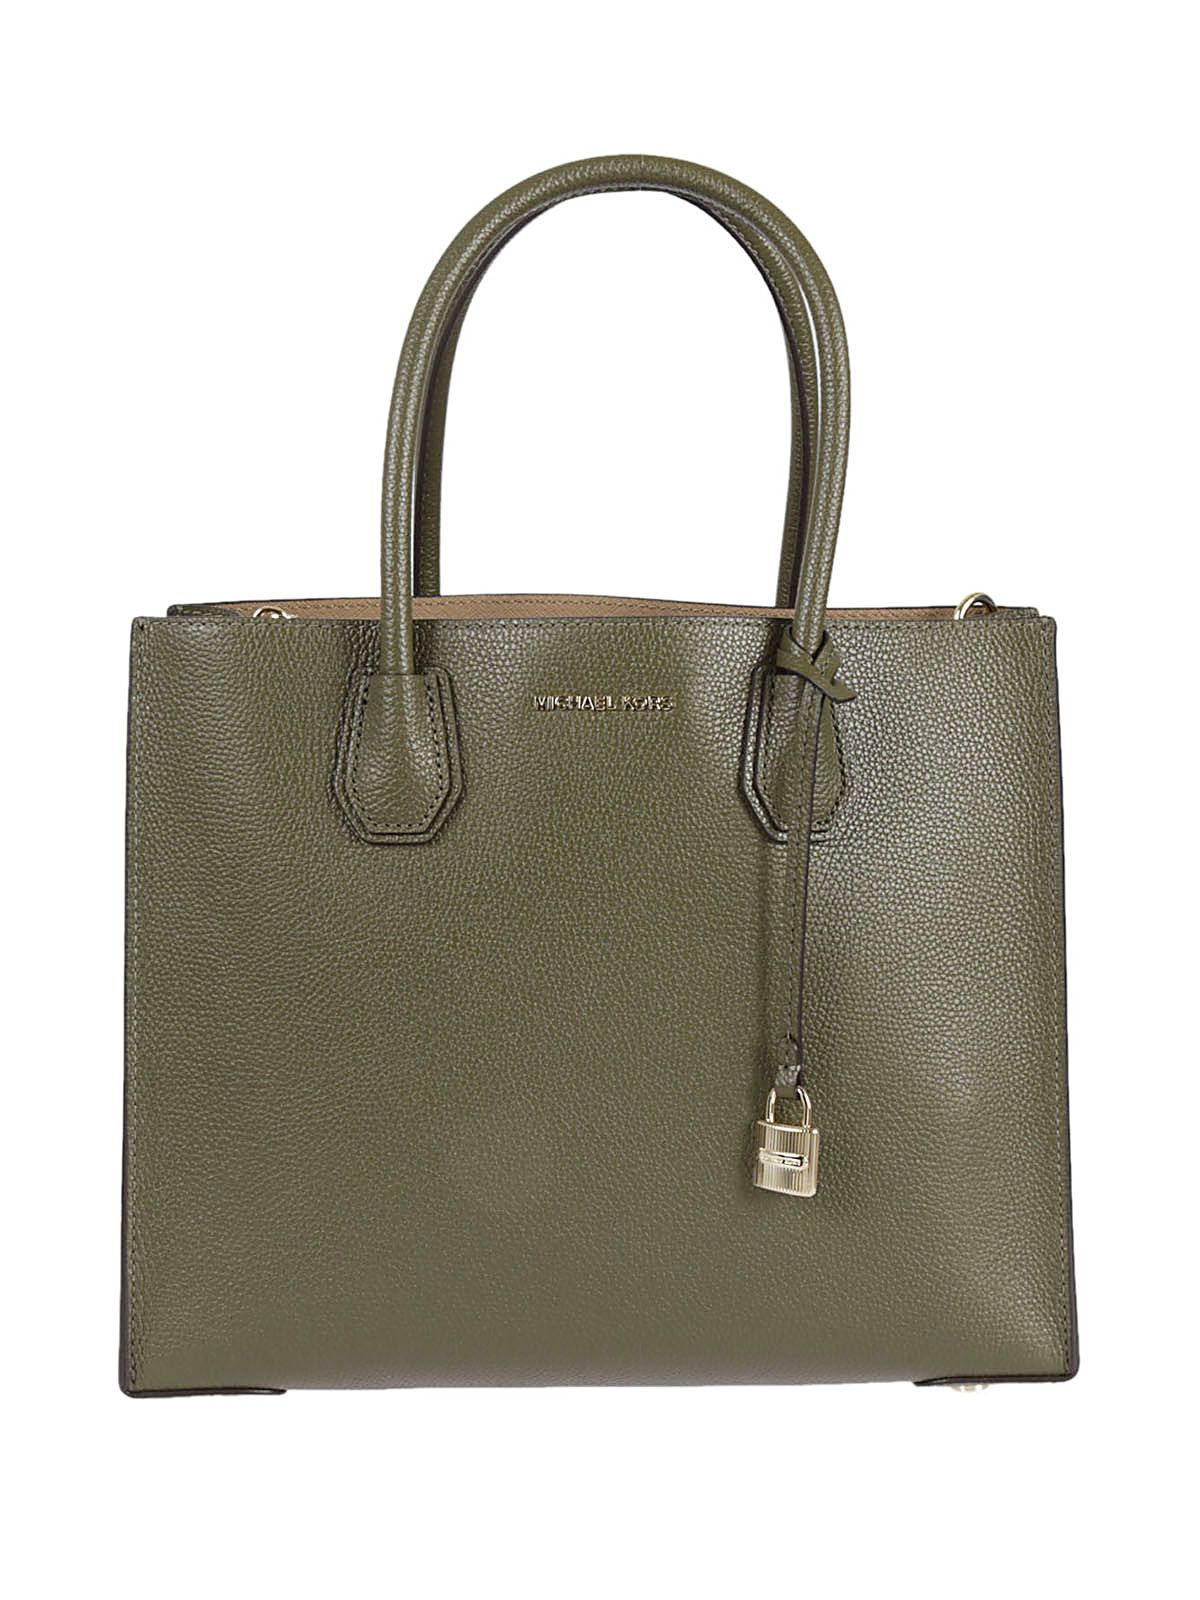 Michael Kors Medium Mercer Tote